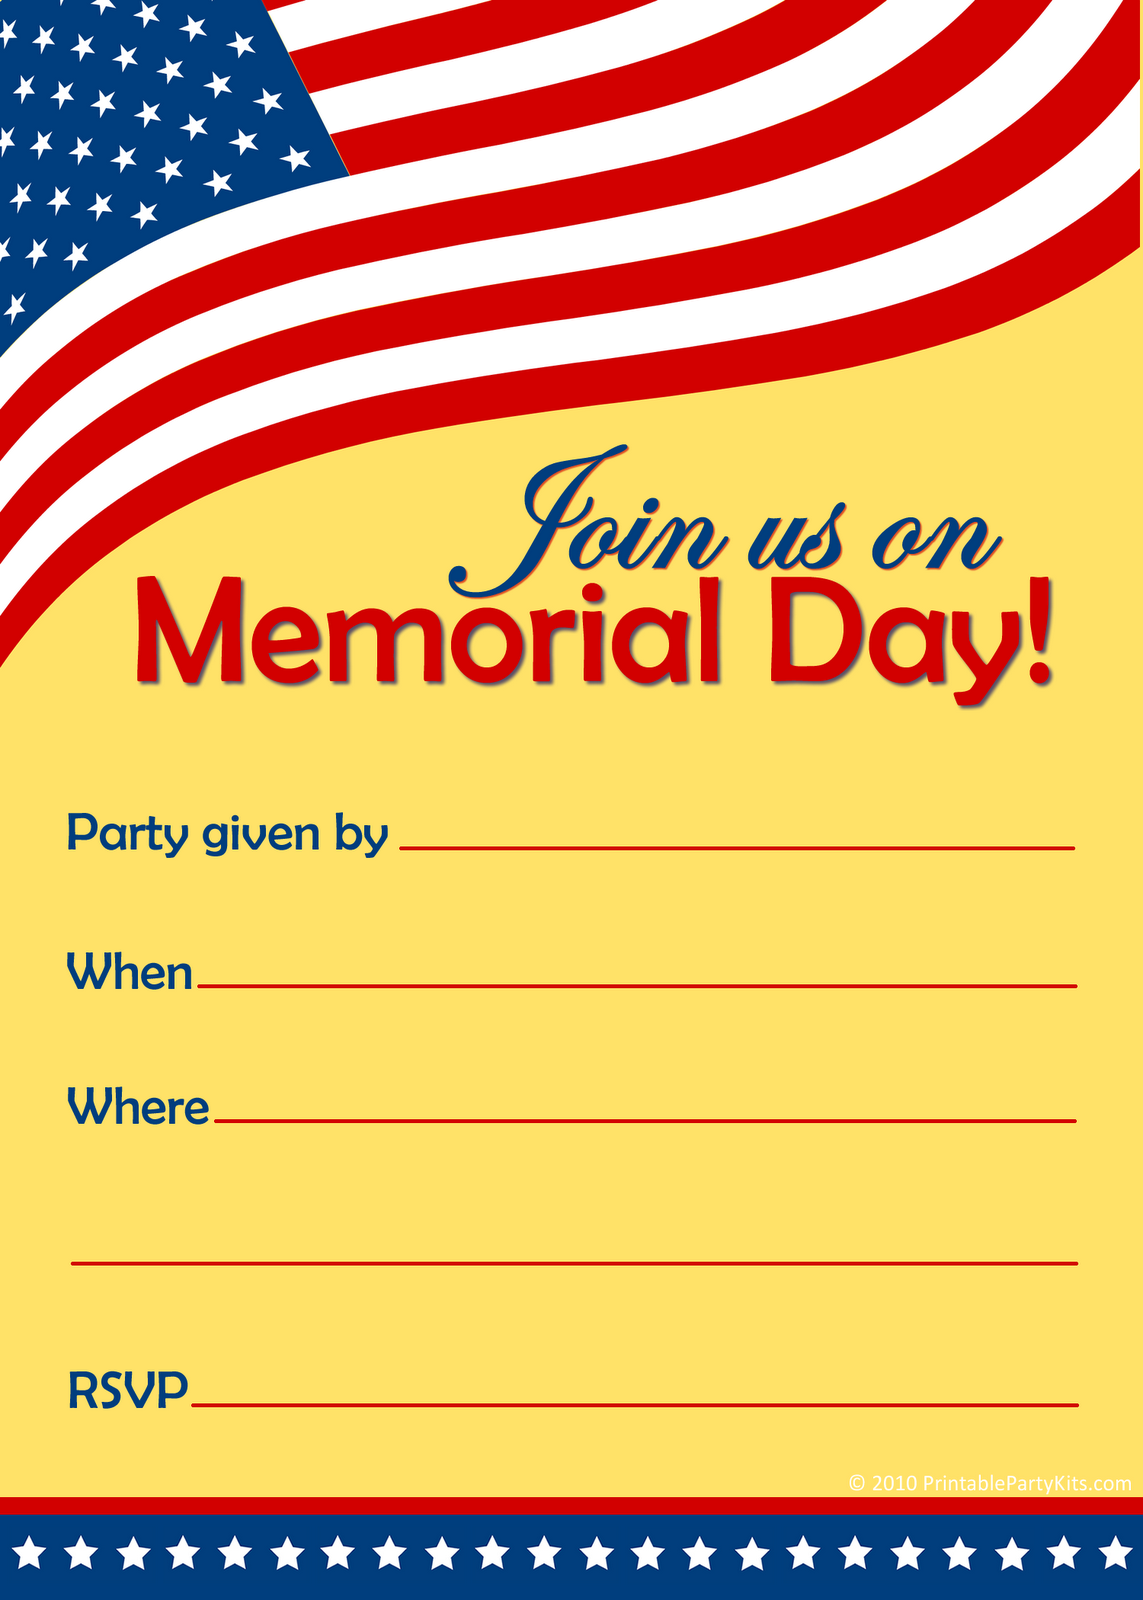 free memorial day party invitations fathers day 2011